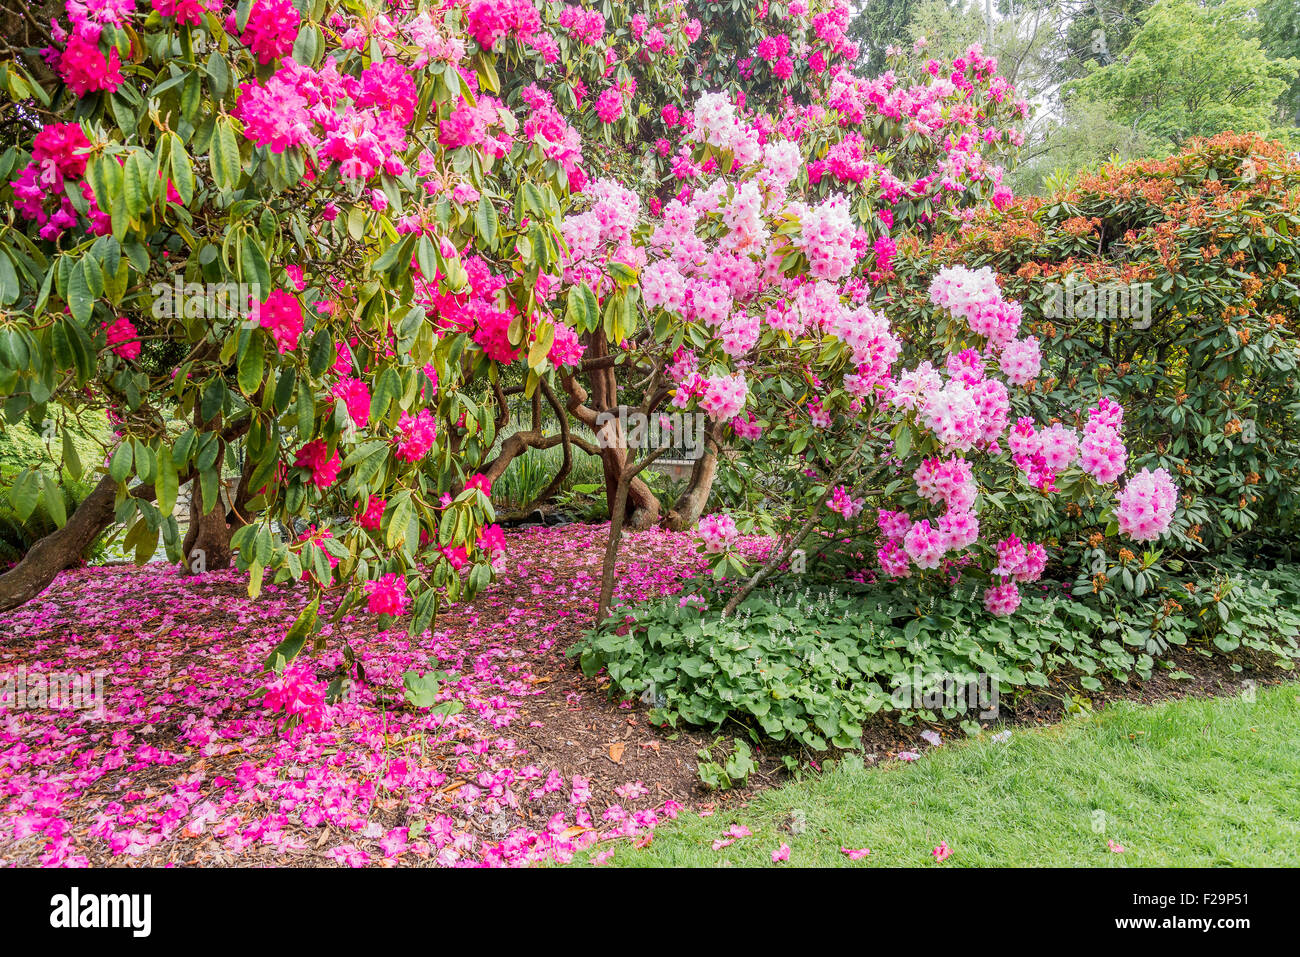 Rhododendron bushes flowering, Beacon Hill Park, Victoria, British Columbia, Canada - Stock Image